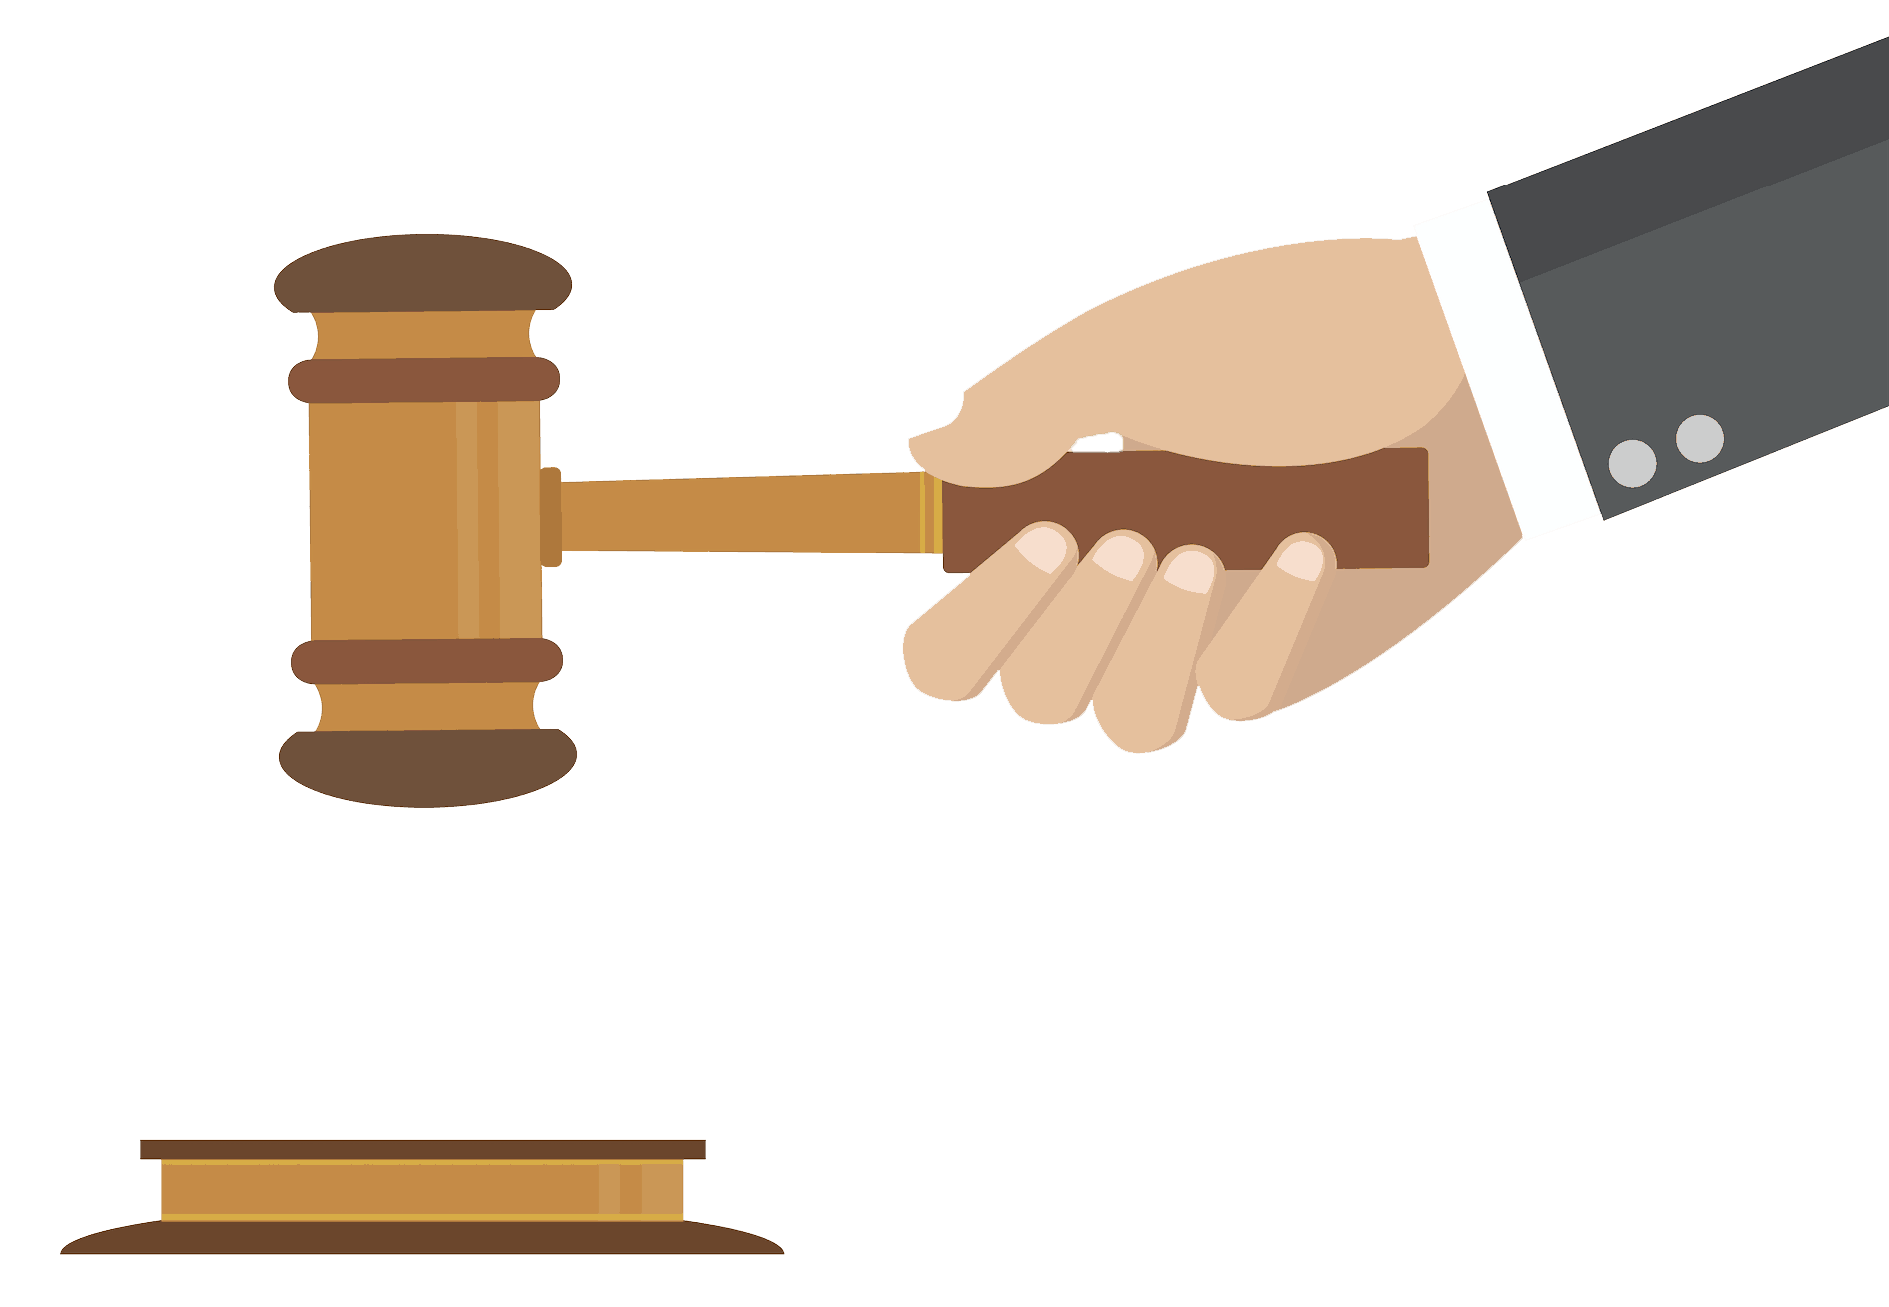 Bitcoin law and justice